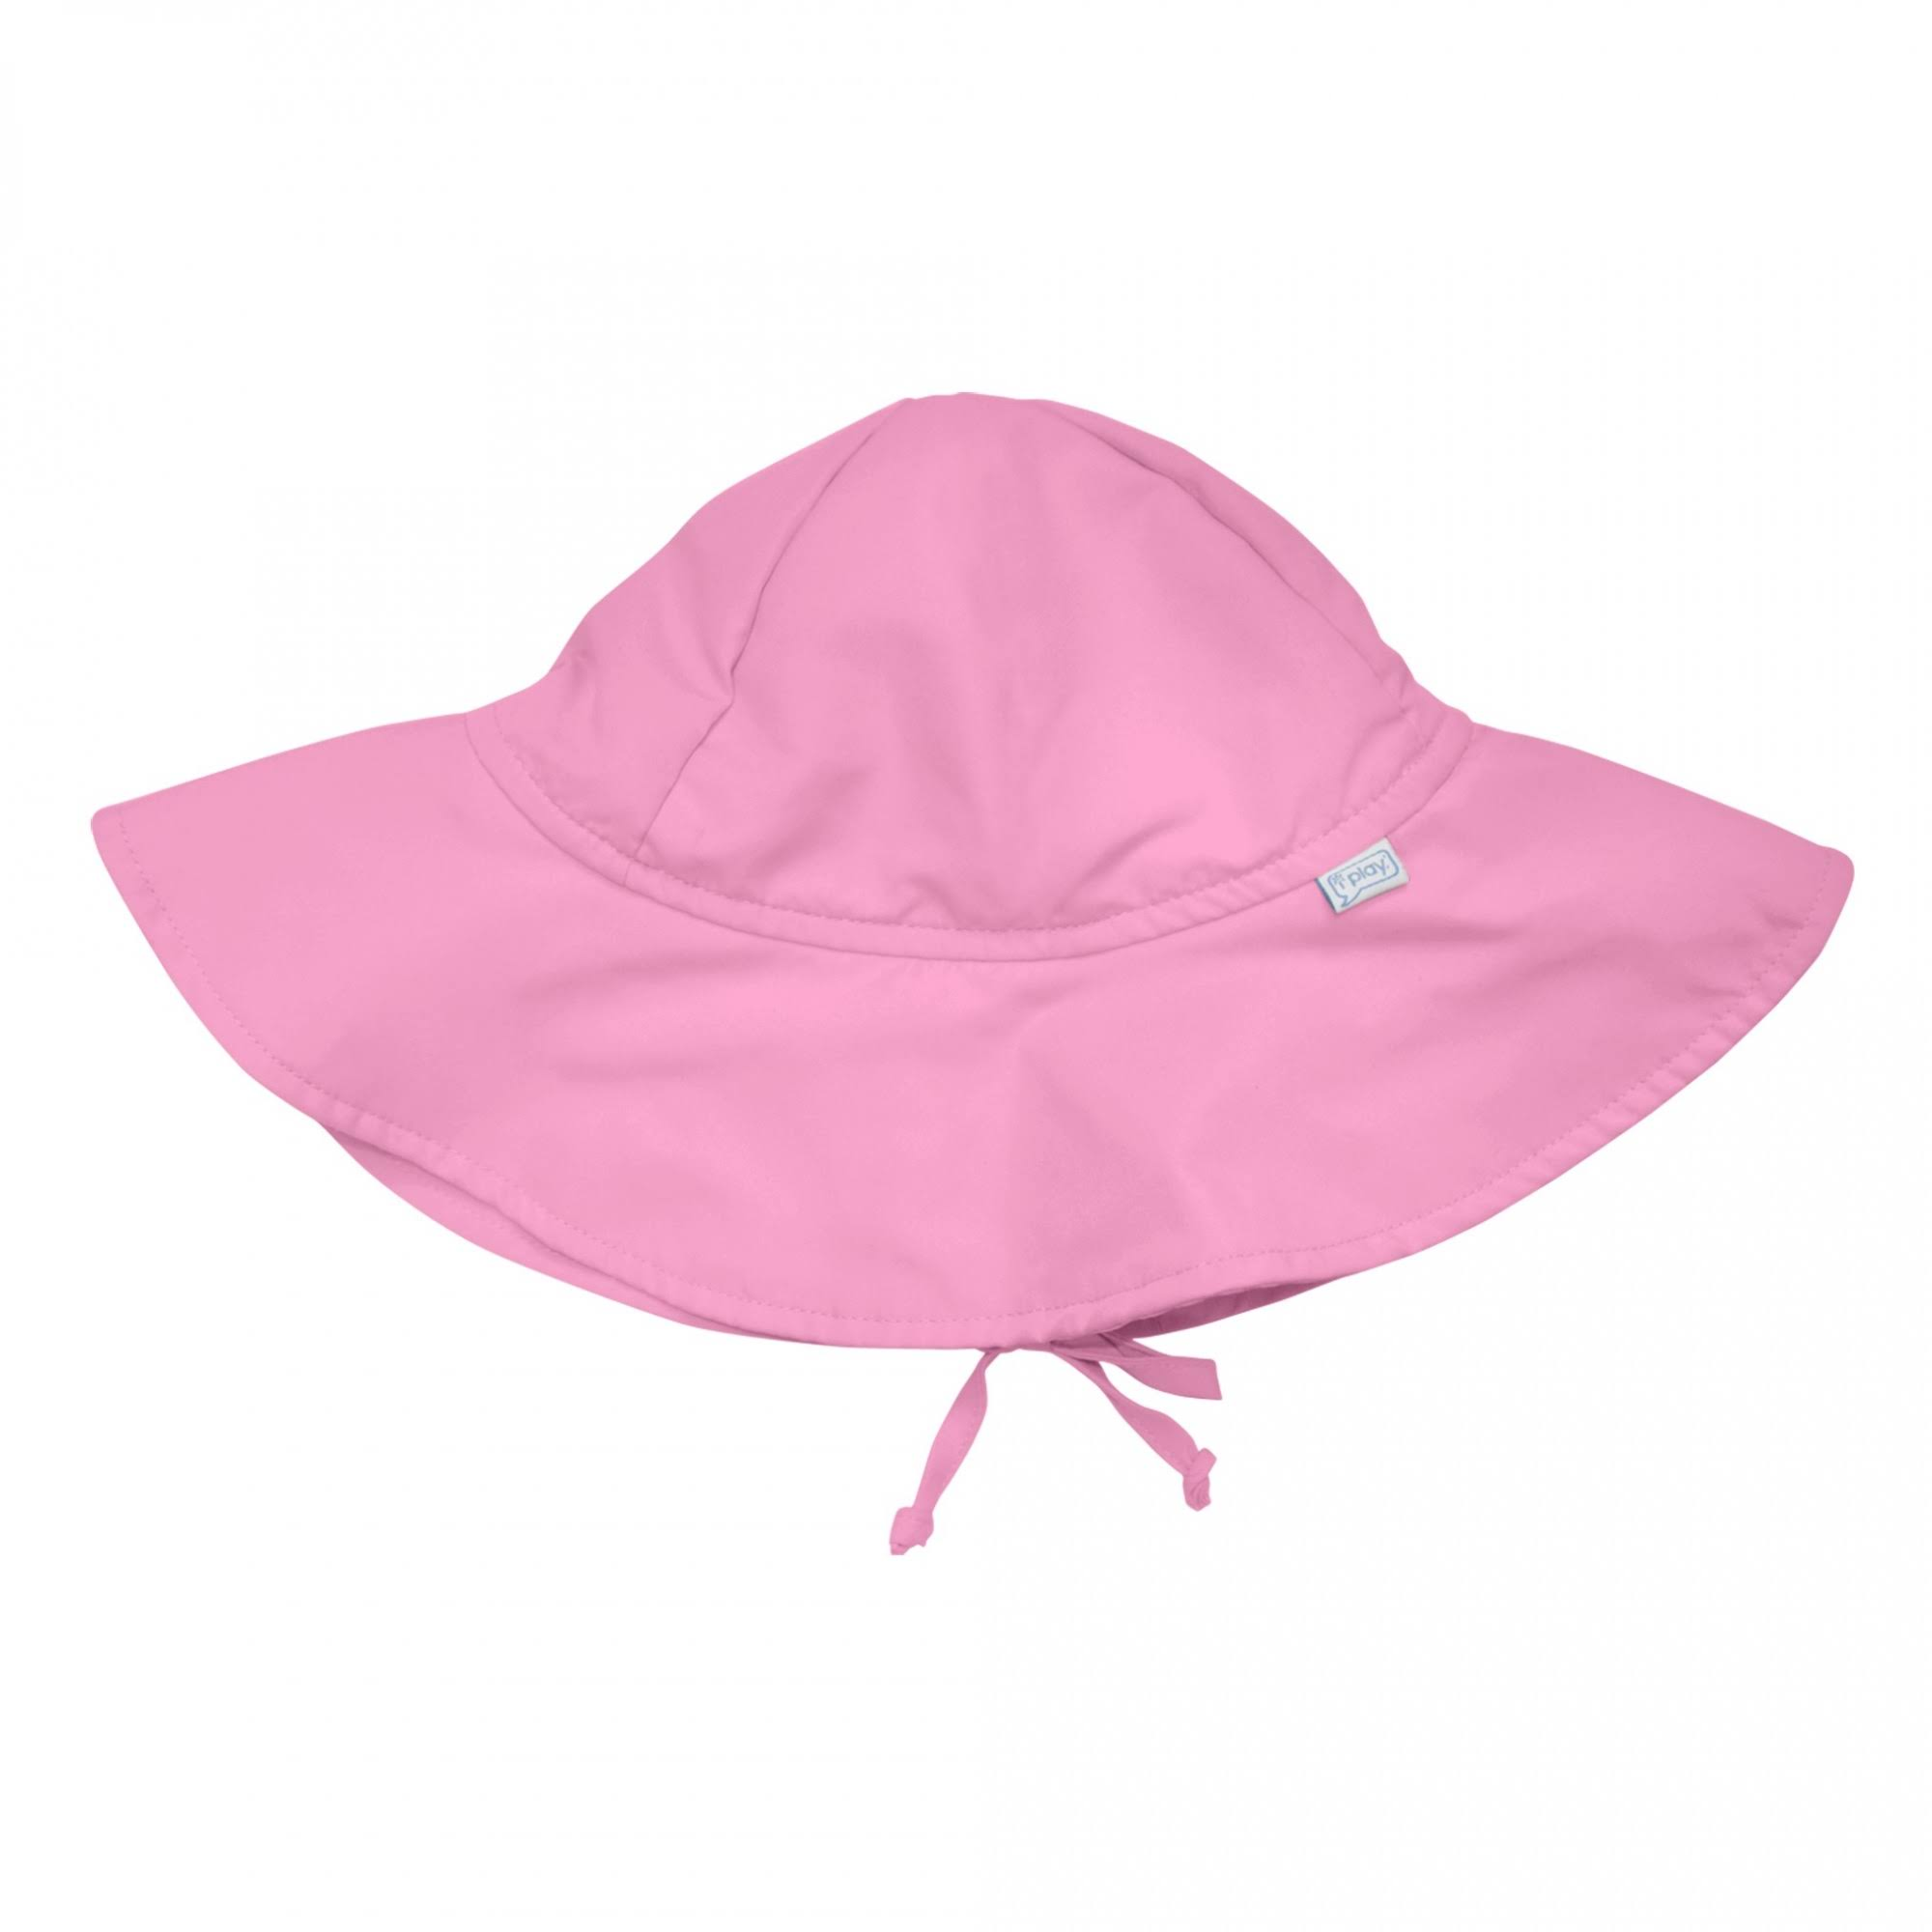 I Play Toddler Brim Sun Protection Hat - Light Pink, 2T-4T